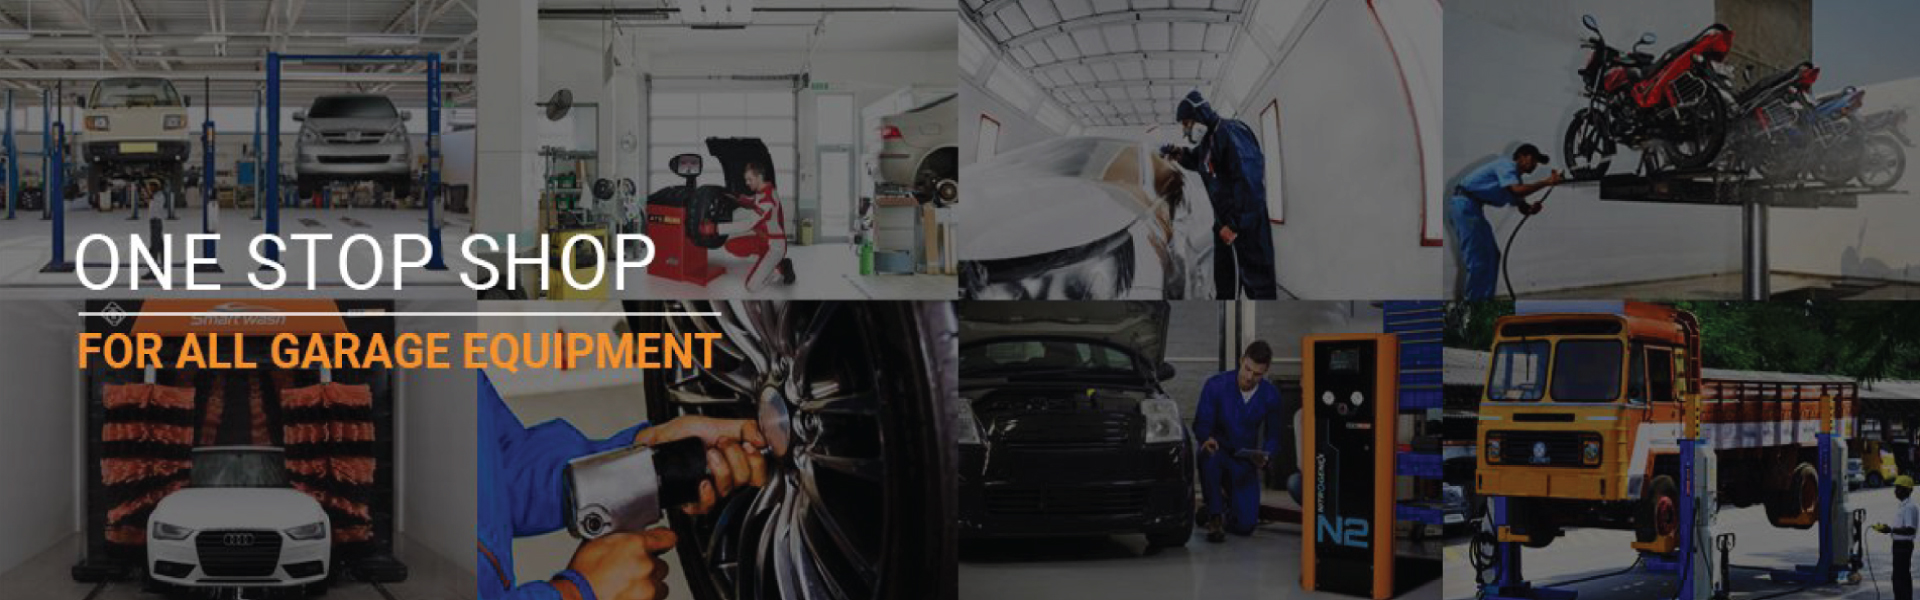 Product units and details of garage equipment